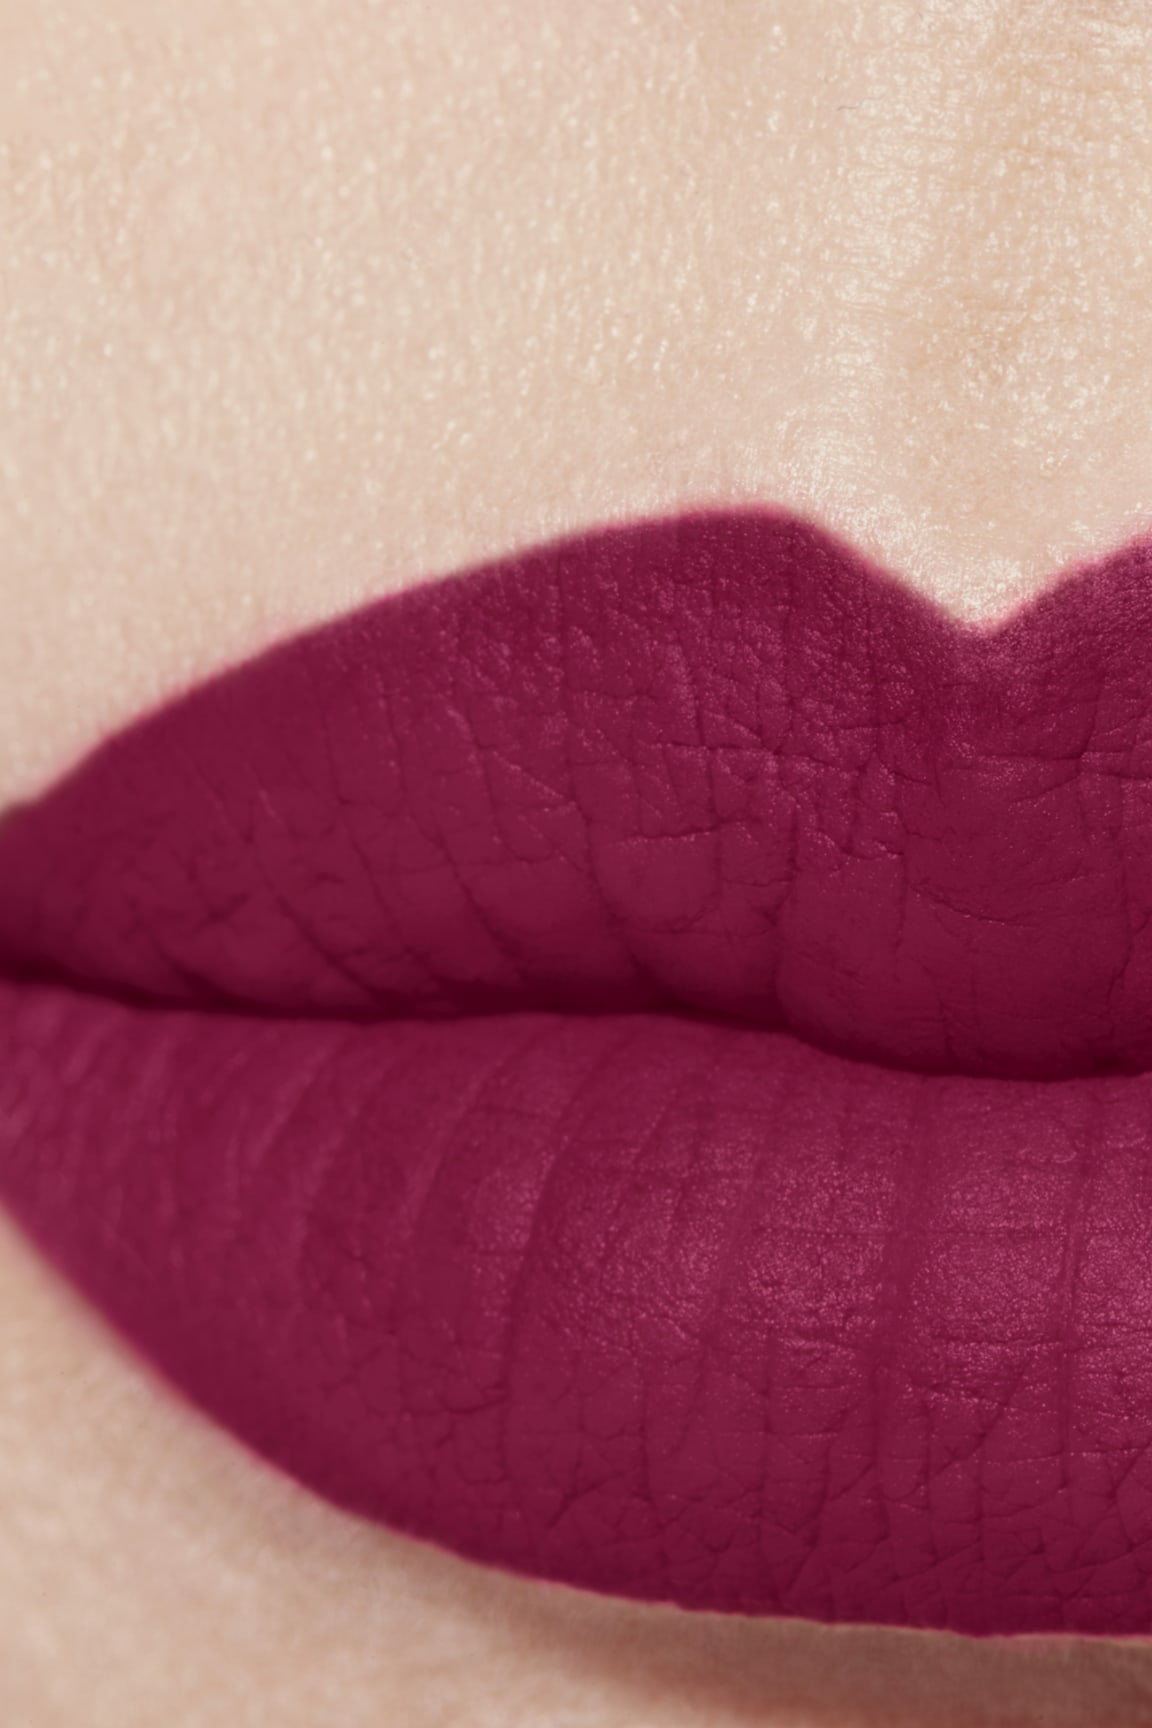 Application makeup visual 1 - ROUGE ALLURE VELVET EXTRÊME 124 - MUTED FUCHSIA